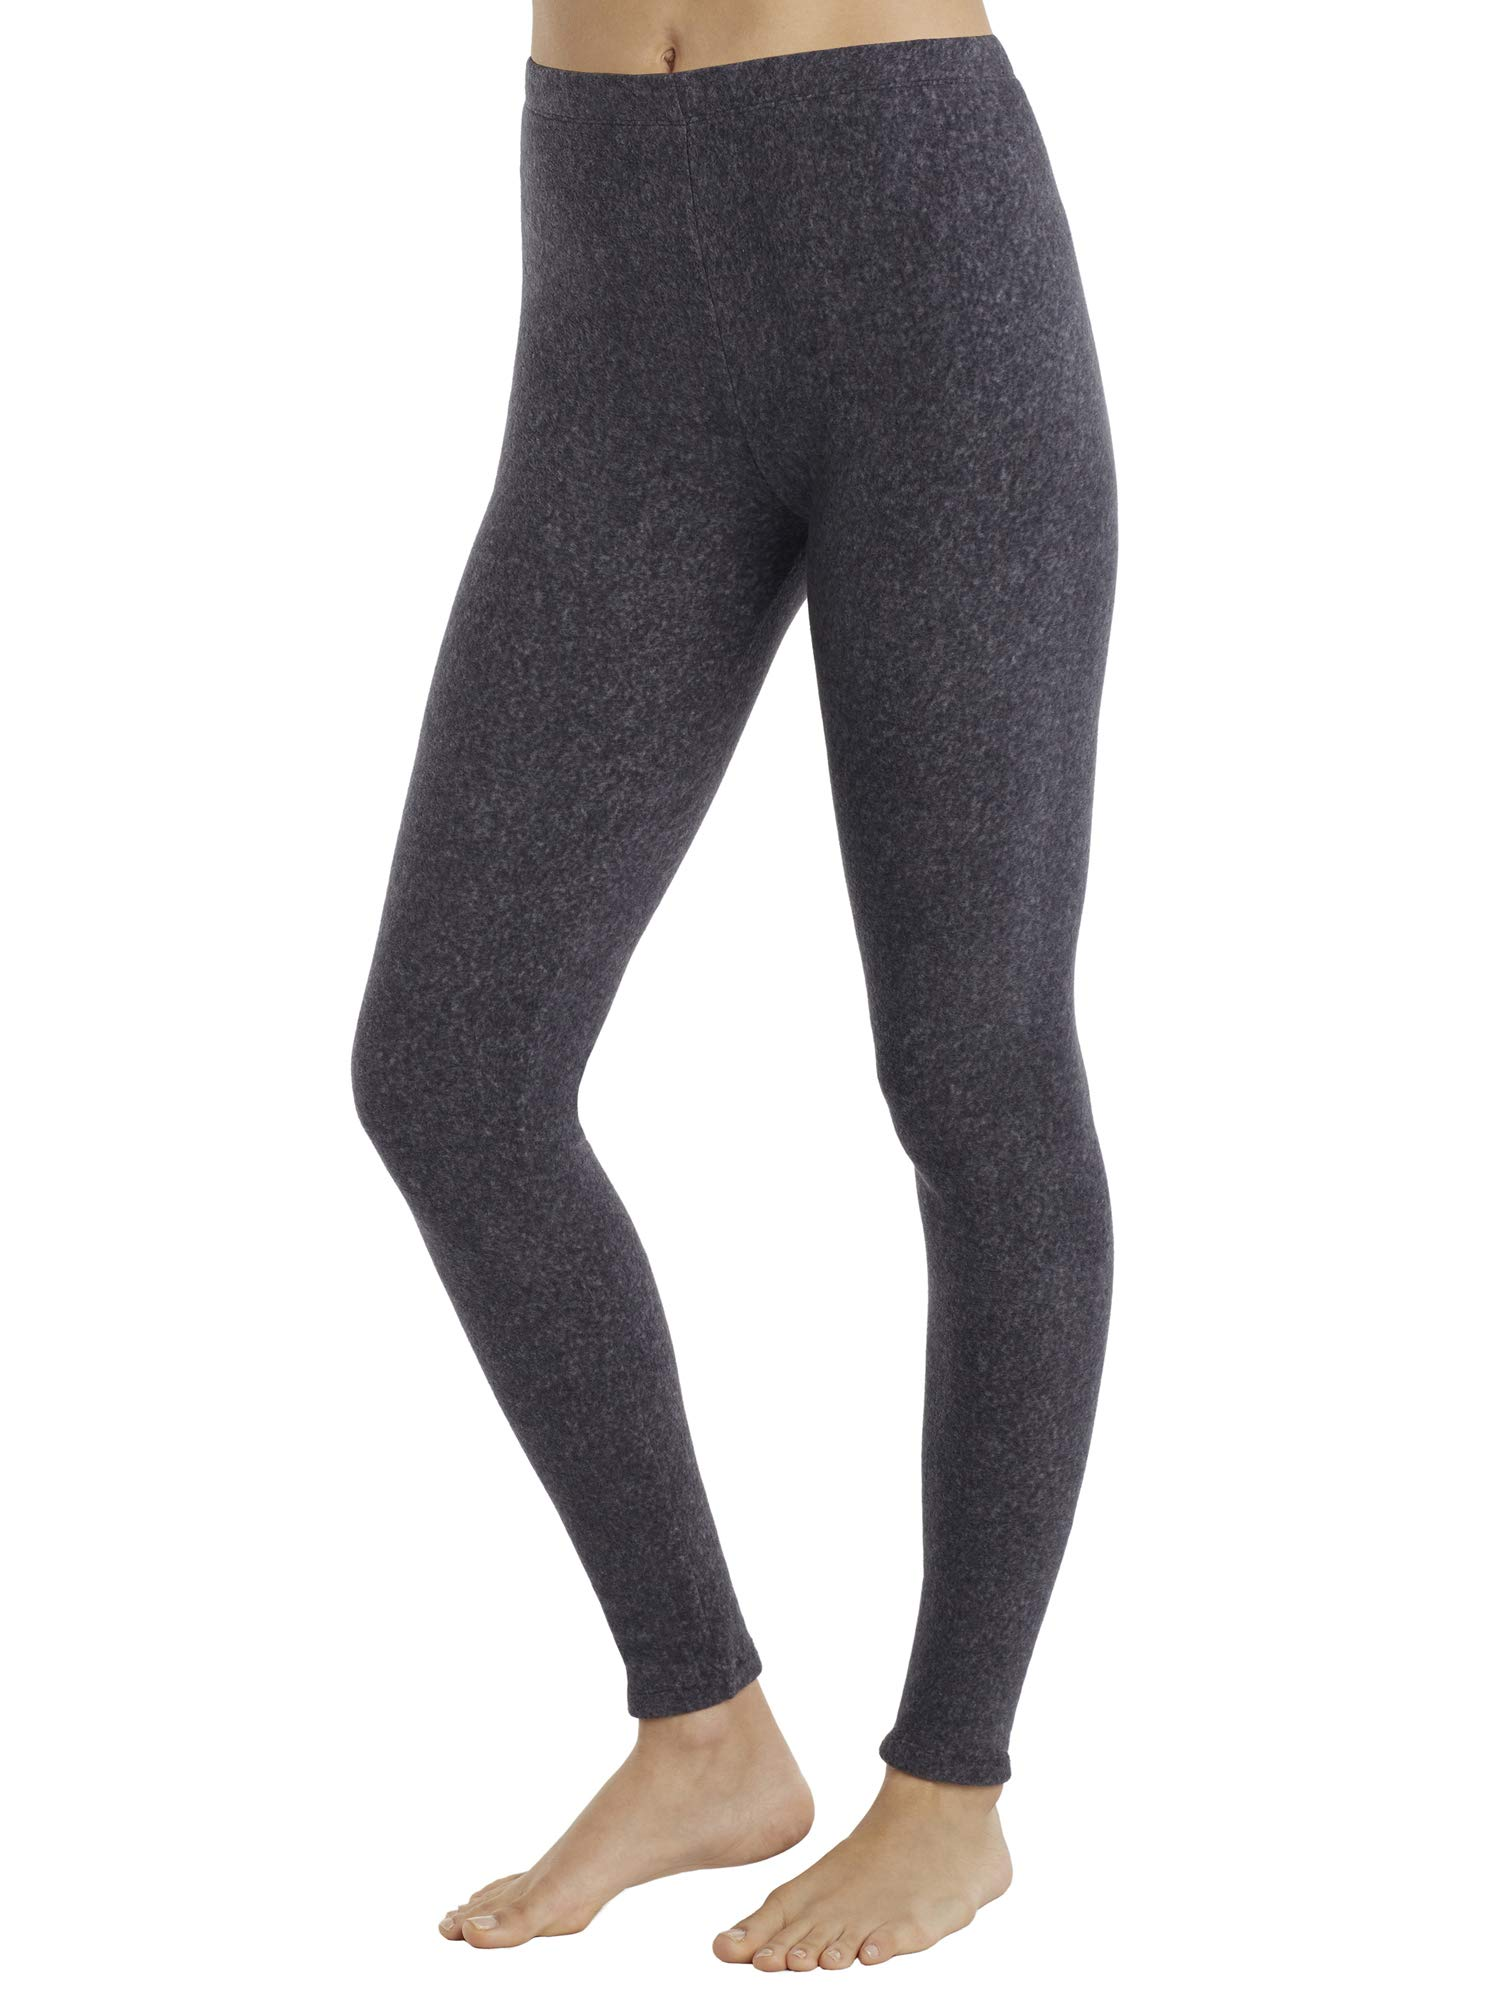 Cuddl Duds ClimateRight Womens Stretch Fleece Warm Underwear Leggings Pants (M, Grey Cationic) by Cuddl Duds